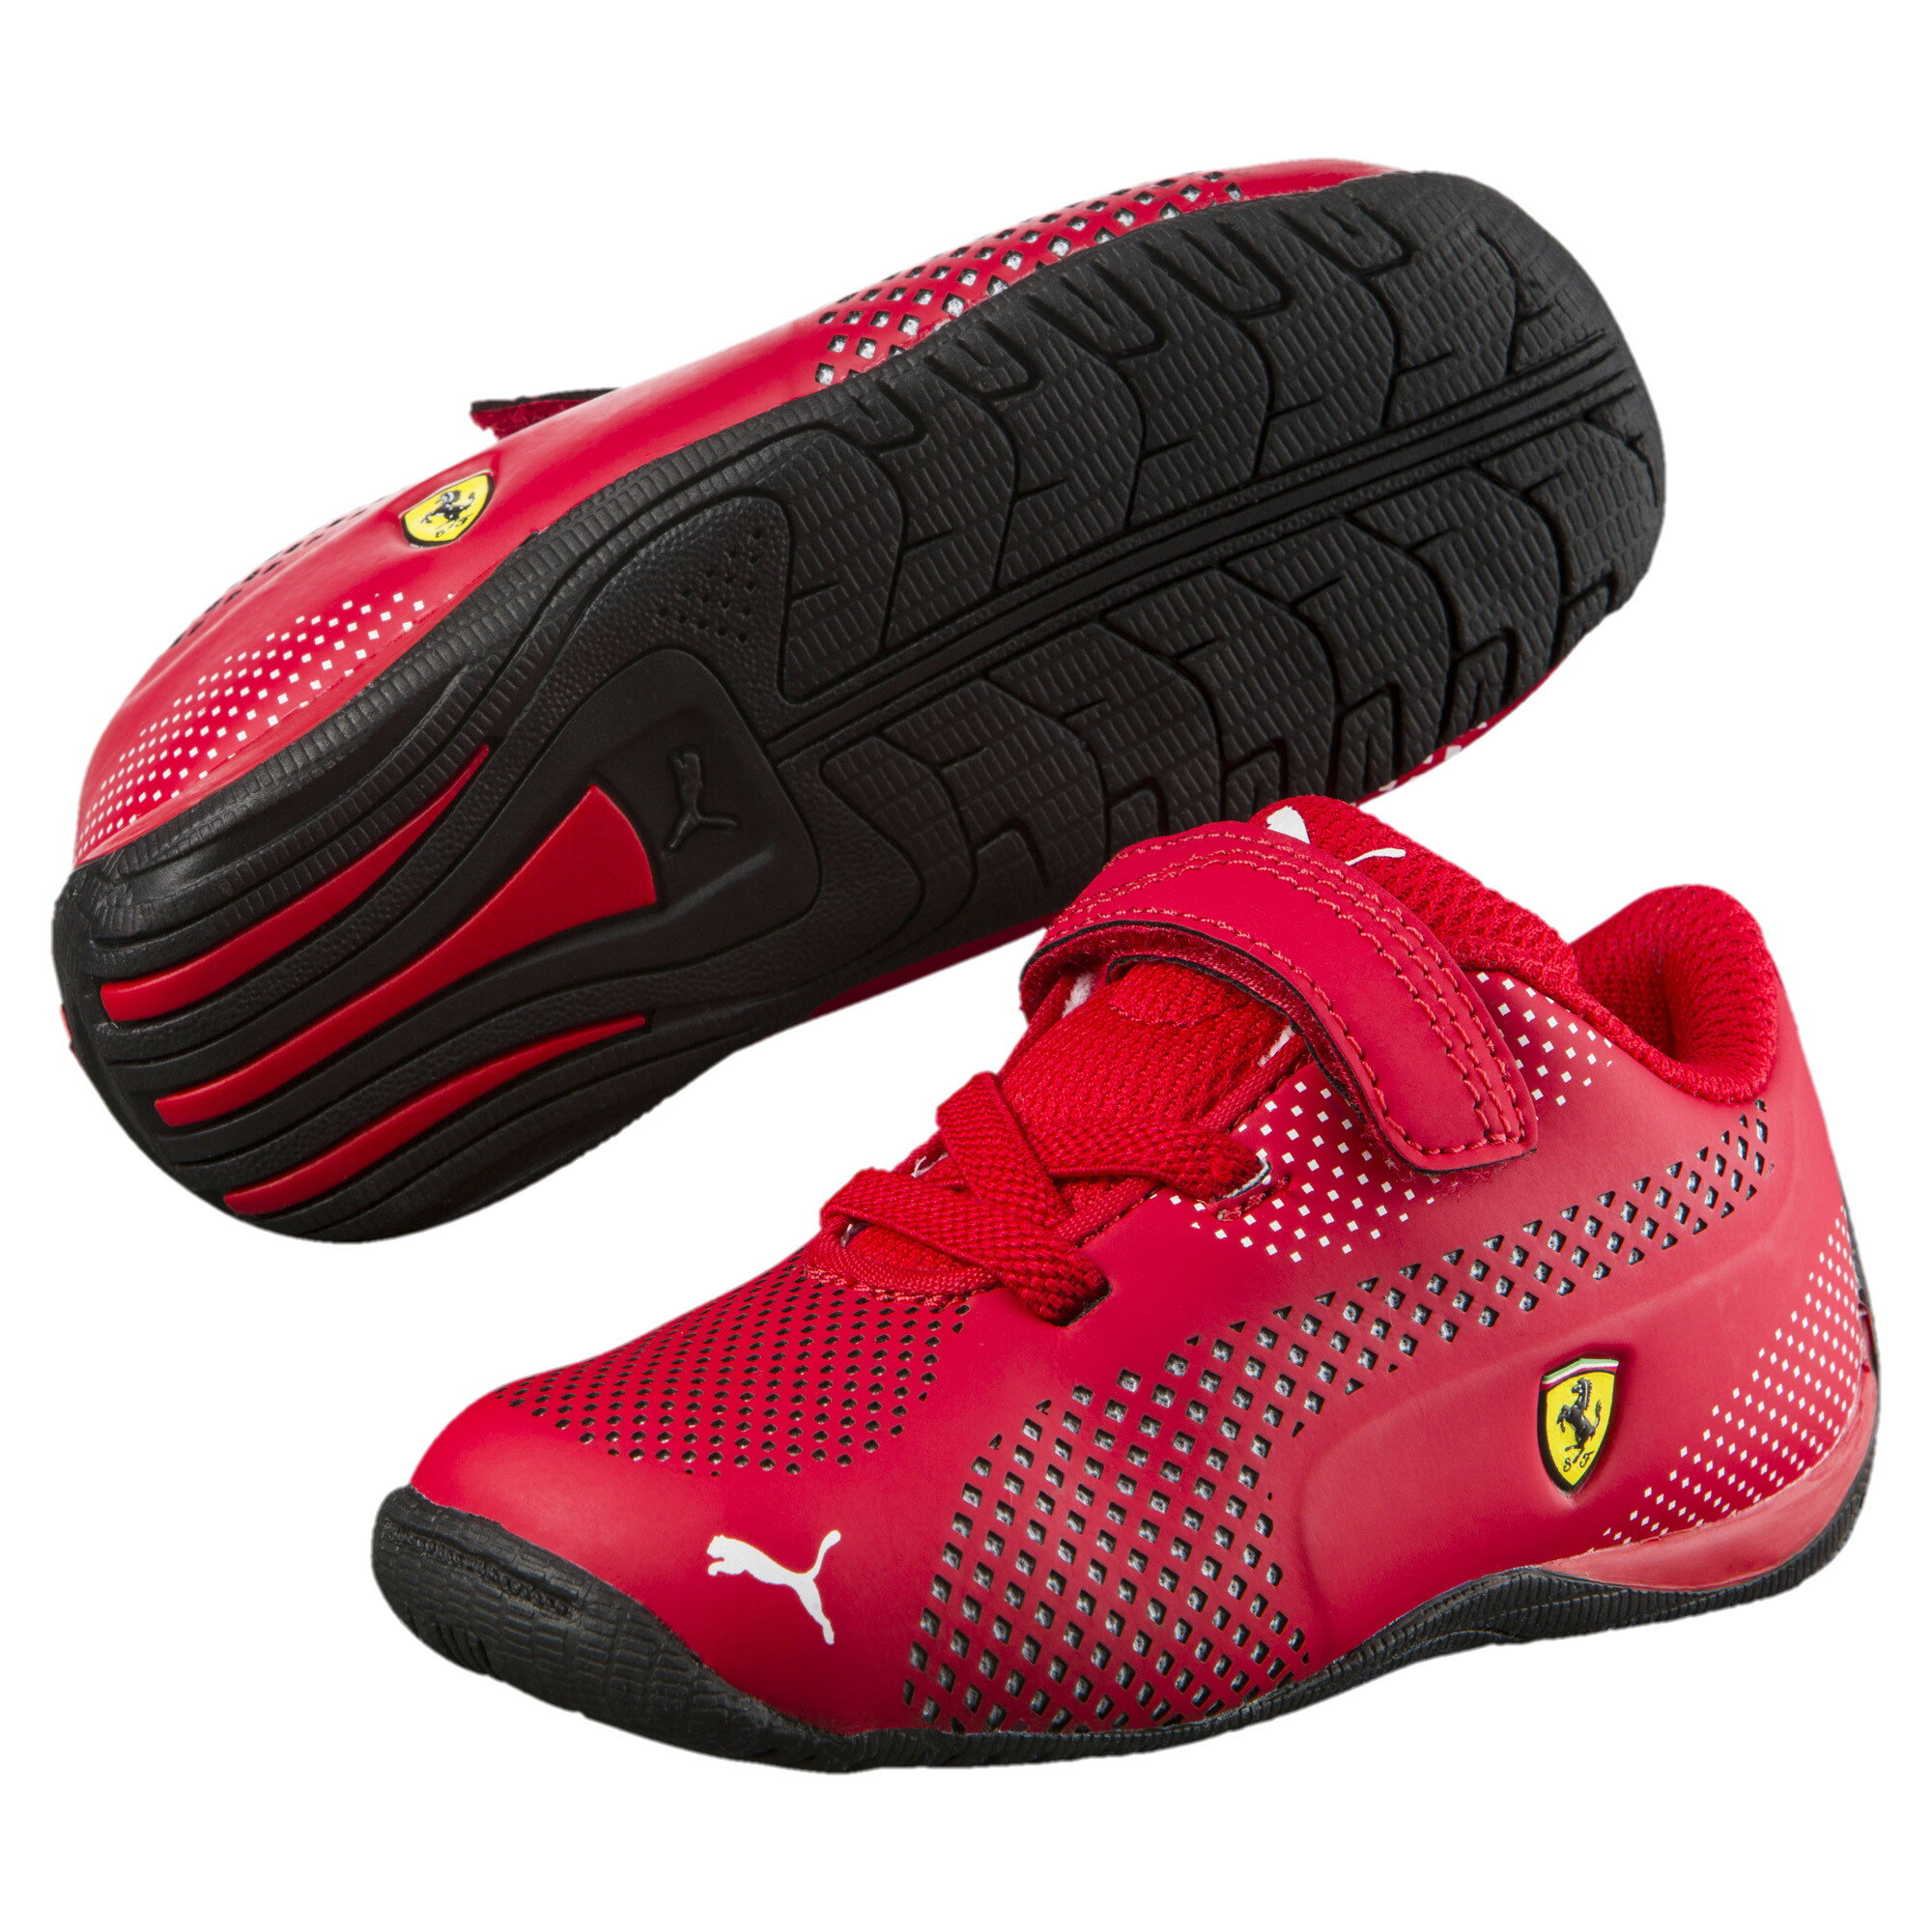 8cd414ae30e Official Puma Store  PUMA Scuderia Ferrari Drift Cat 5 Ultra Shoes ...